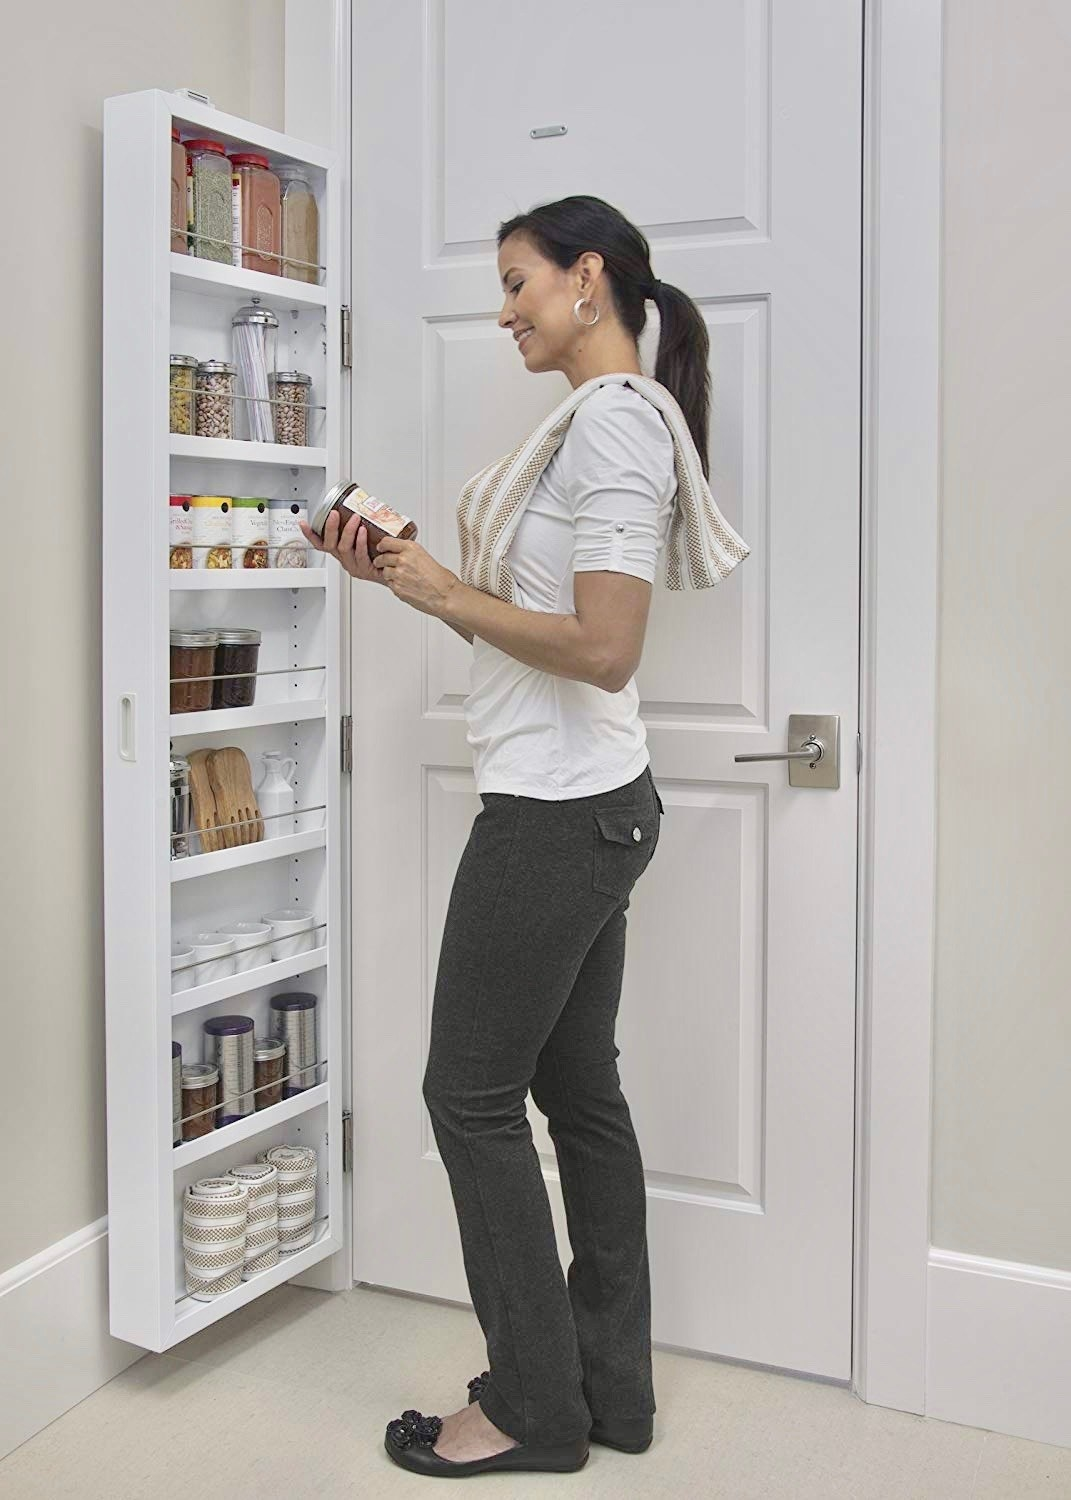 Eight shelf hinged cupboard attached to closed door